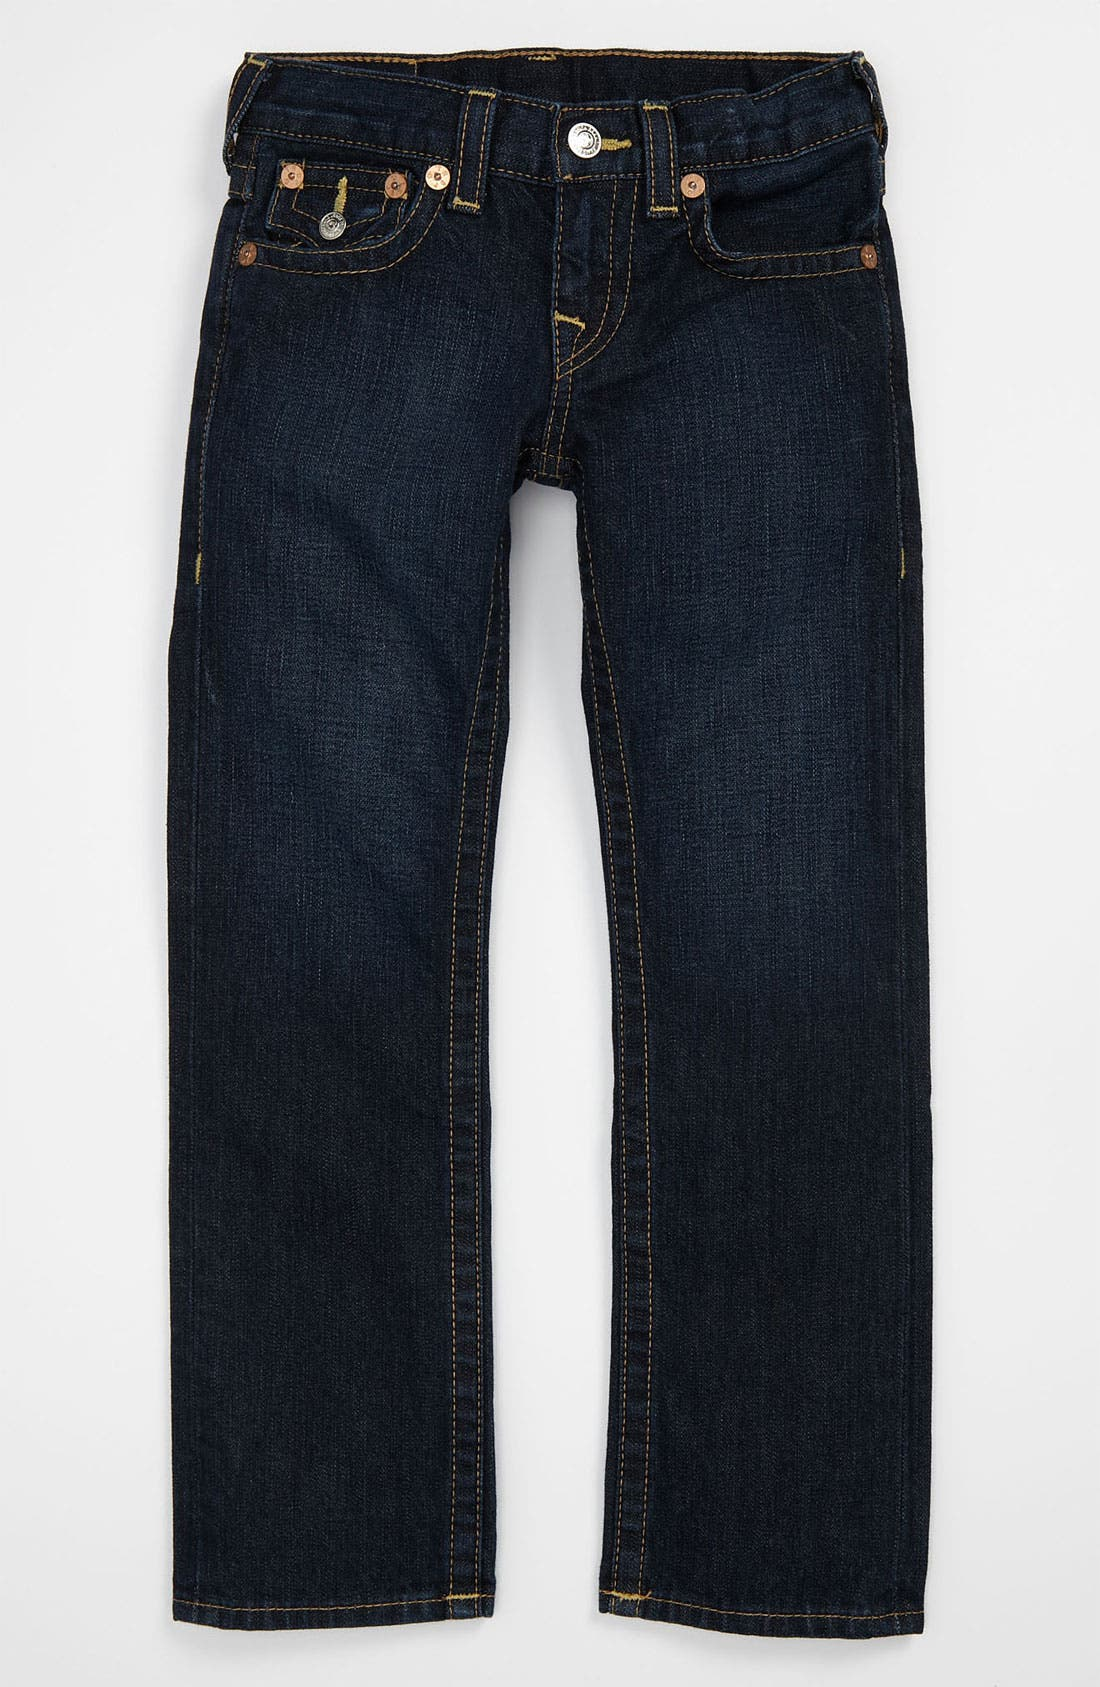 Alternate Image 2  - True Religion Brand Jeans 'Jack' Straight Leg Jeans (Little Boys)